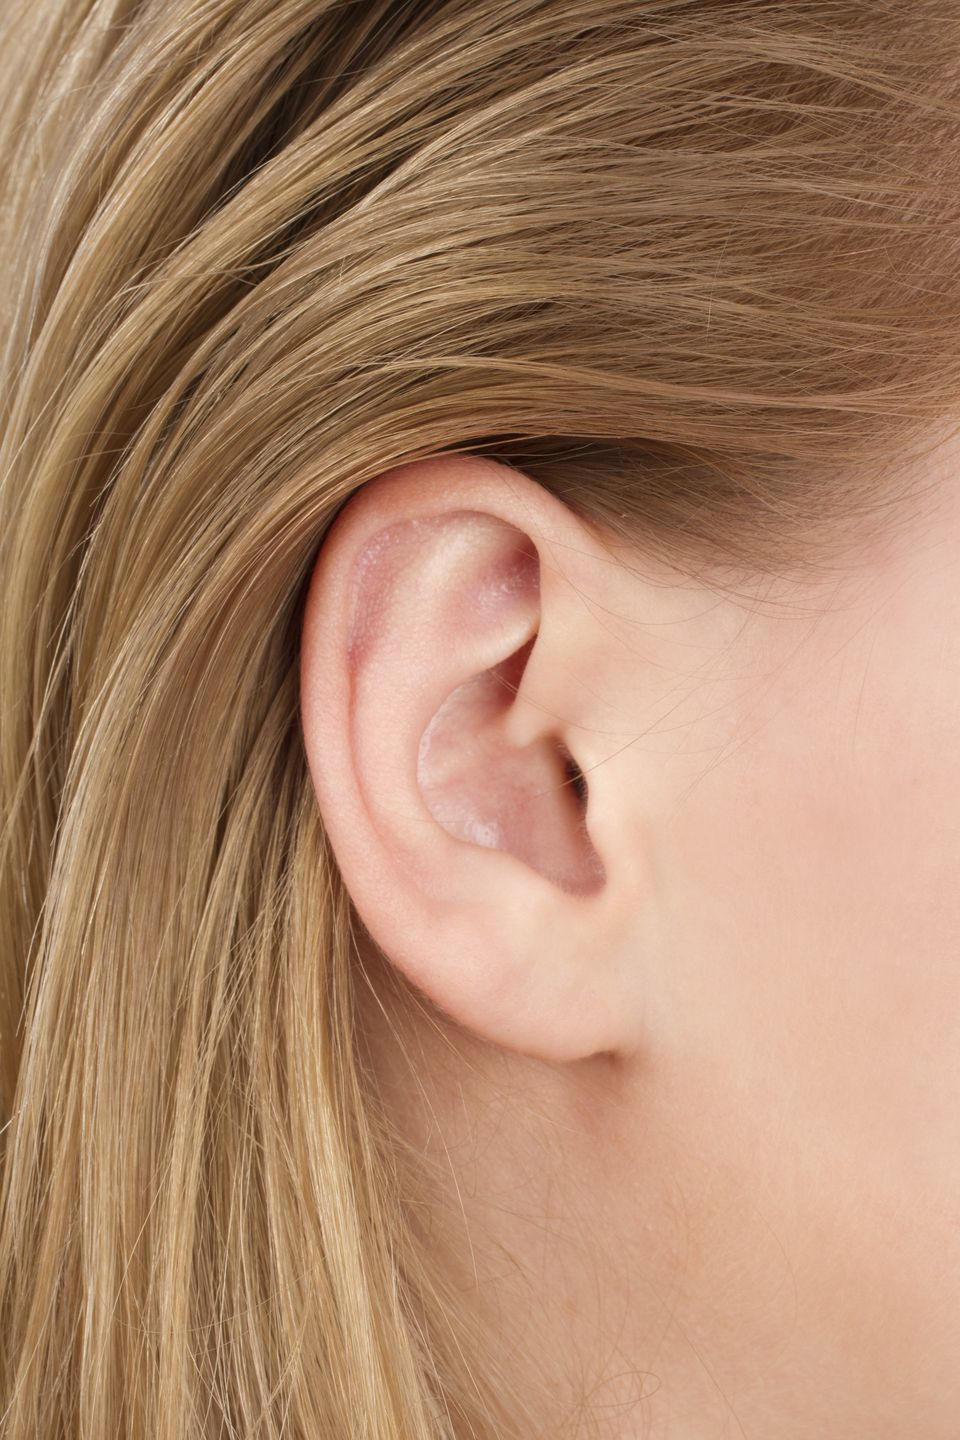 People who are using their left hands when listening may more easily hear rapidly changing sounds than those who are using th